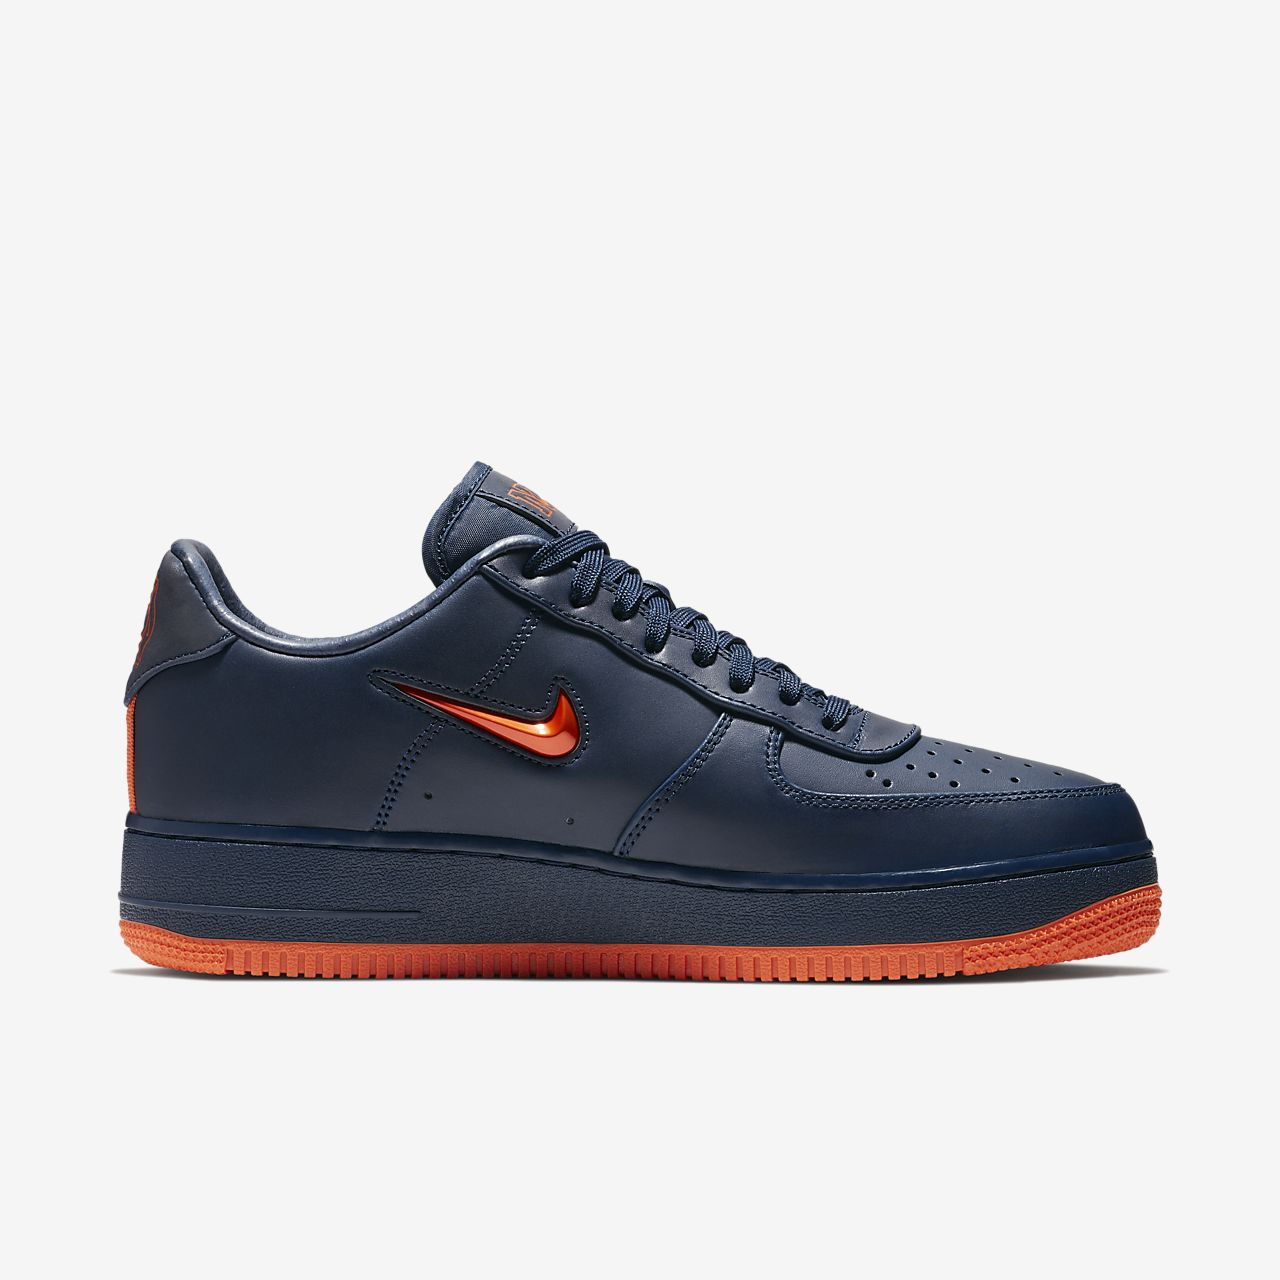 ... Nike Air Force 1 Low Premium Men's Shoe